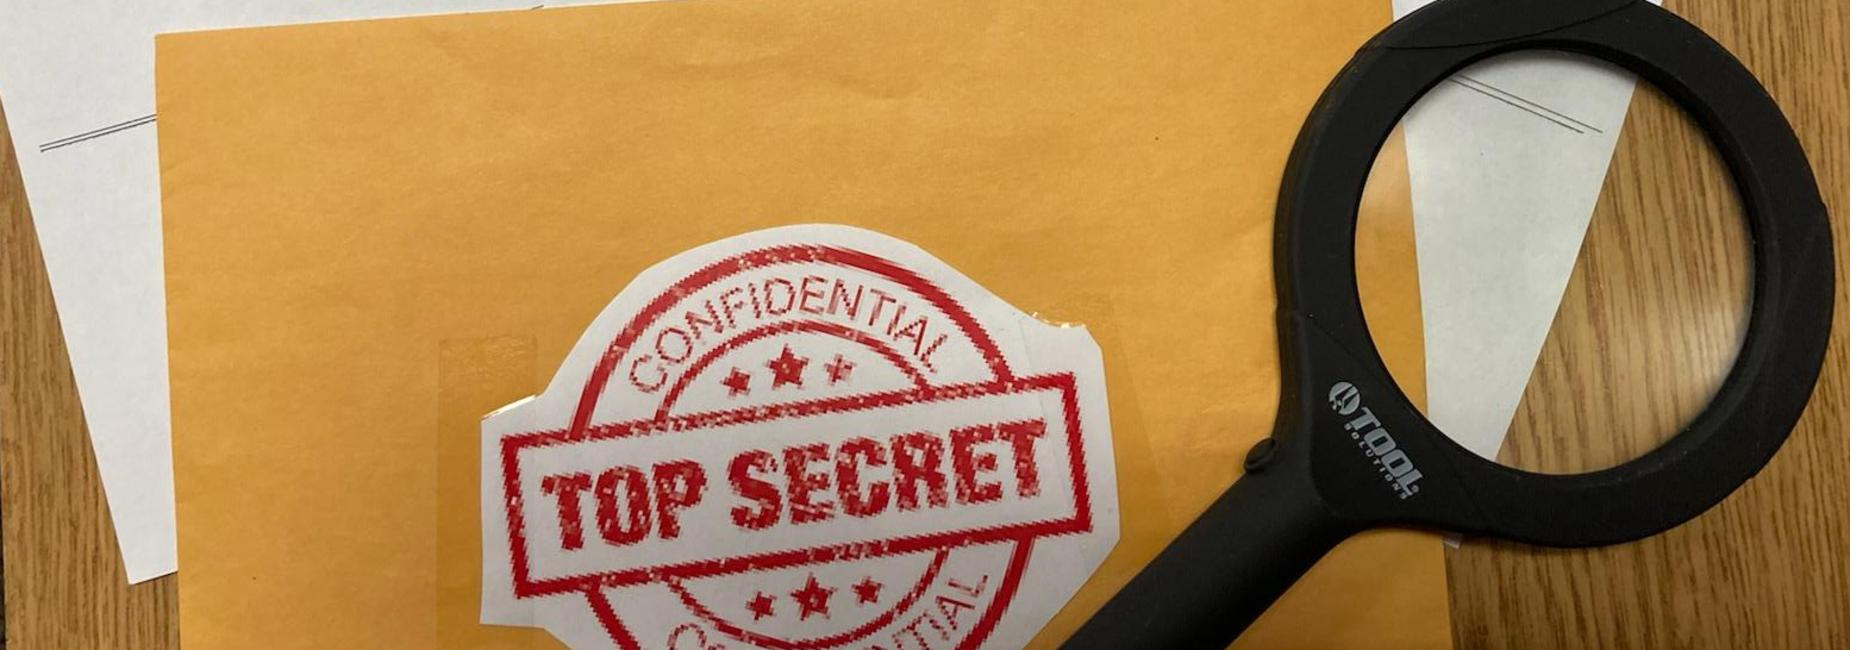 Envelope labeld Top Secret with Magnifying glass